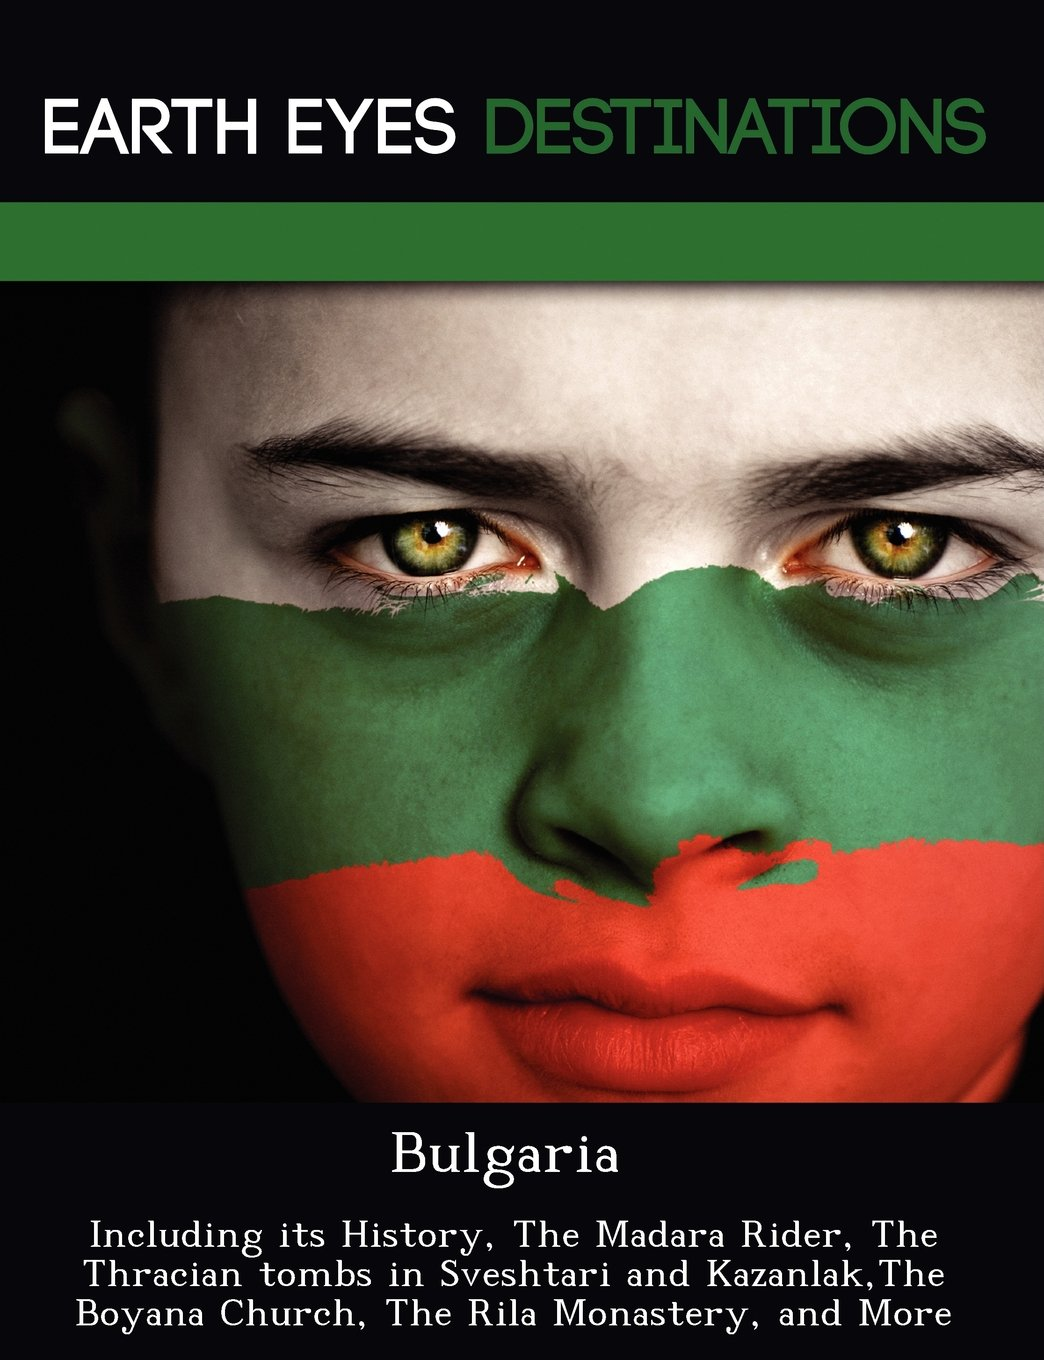 Download Bulgaria: Including its History, The Madara Rider, The Thracian tombs in Sveshtari and Kazanlak,The Boyana Church, The Rila Monastery, and More pdf epub